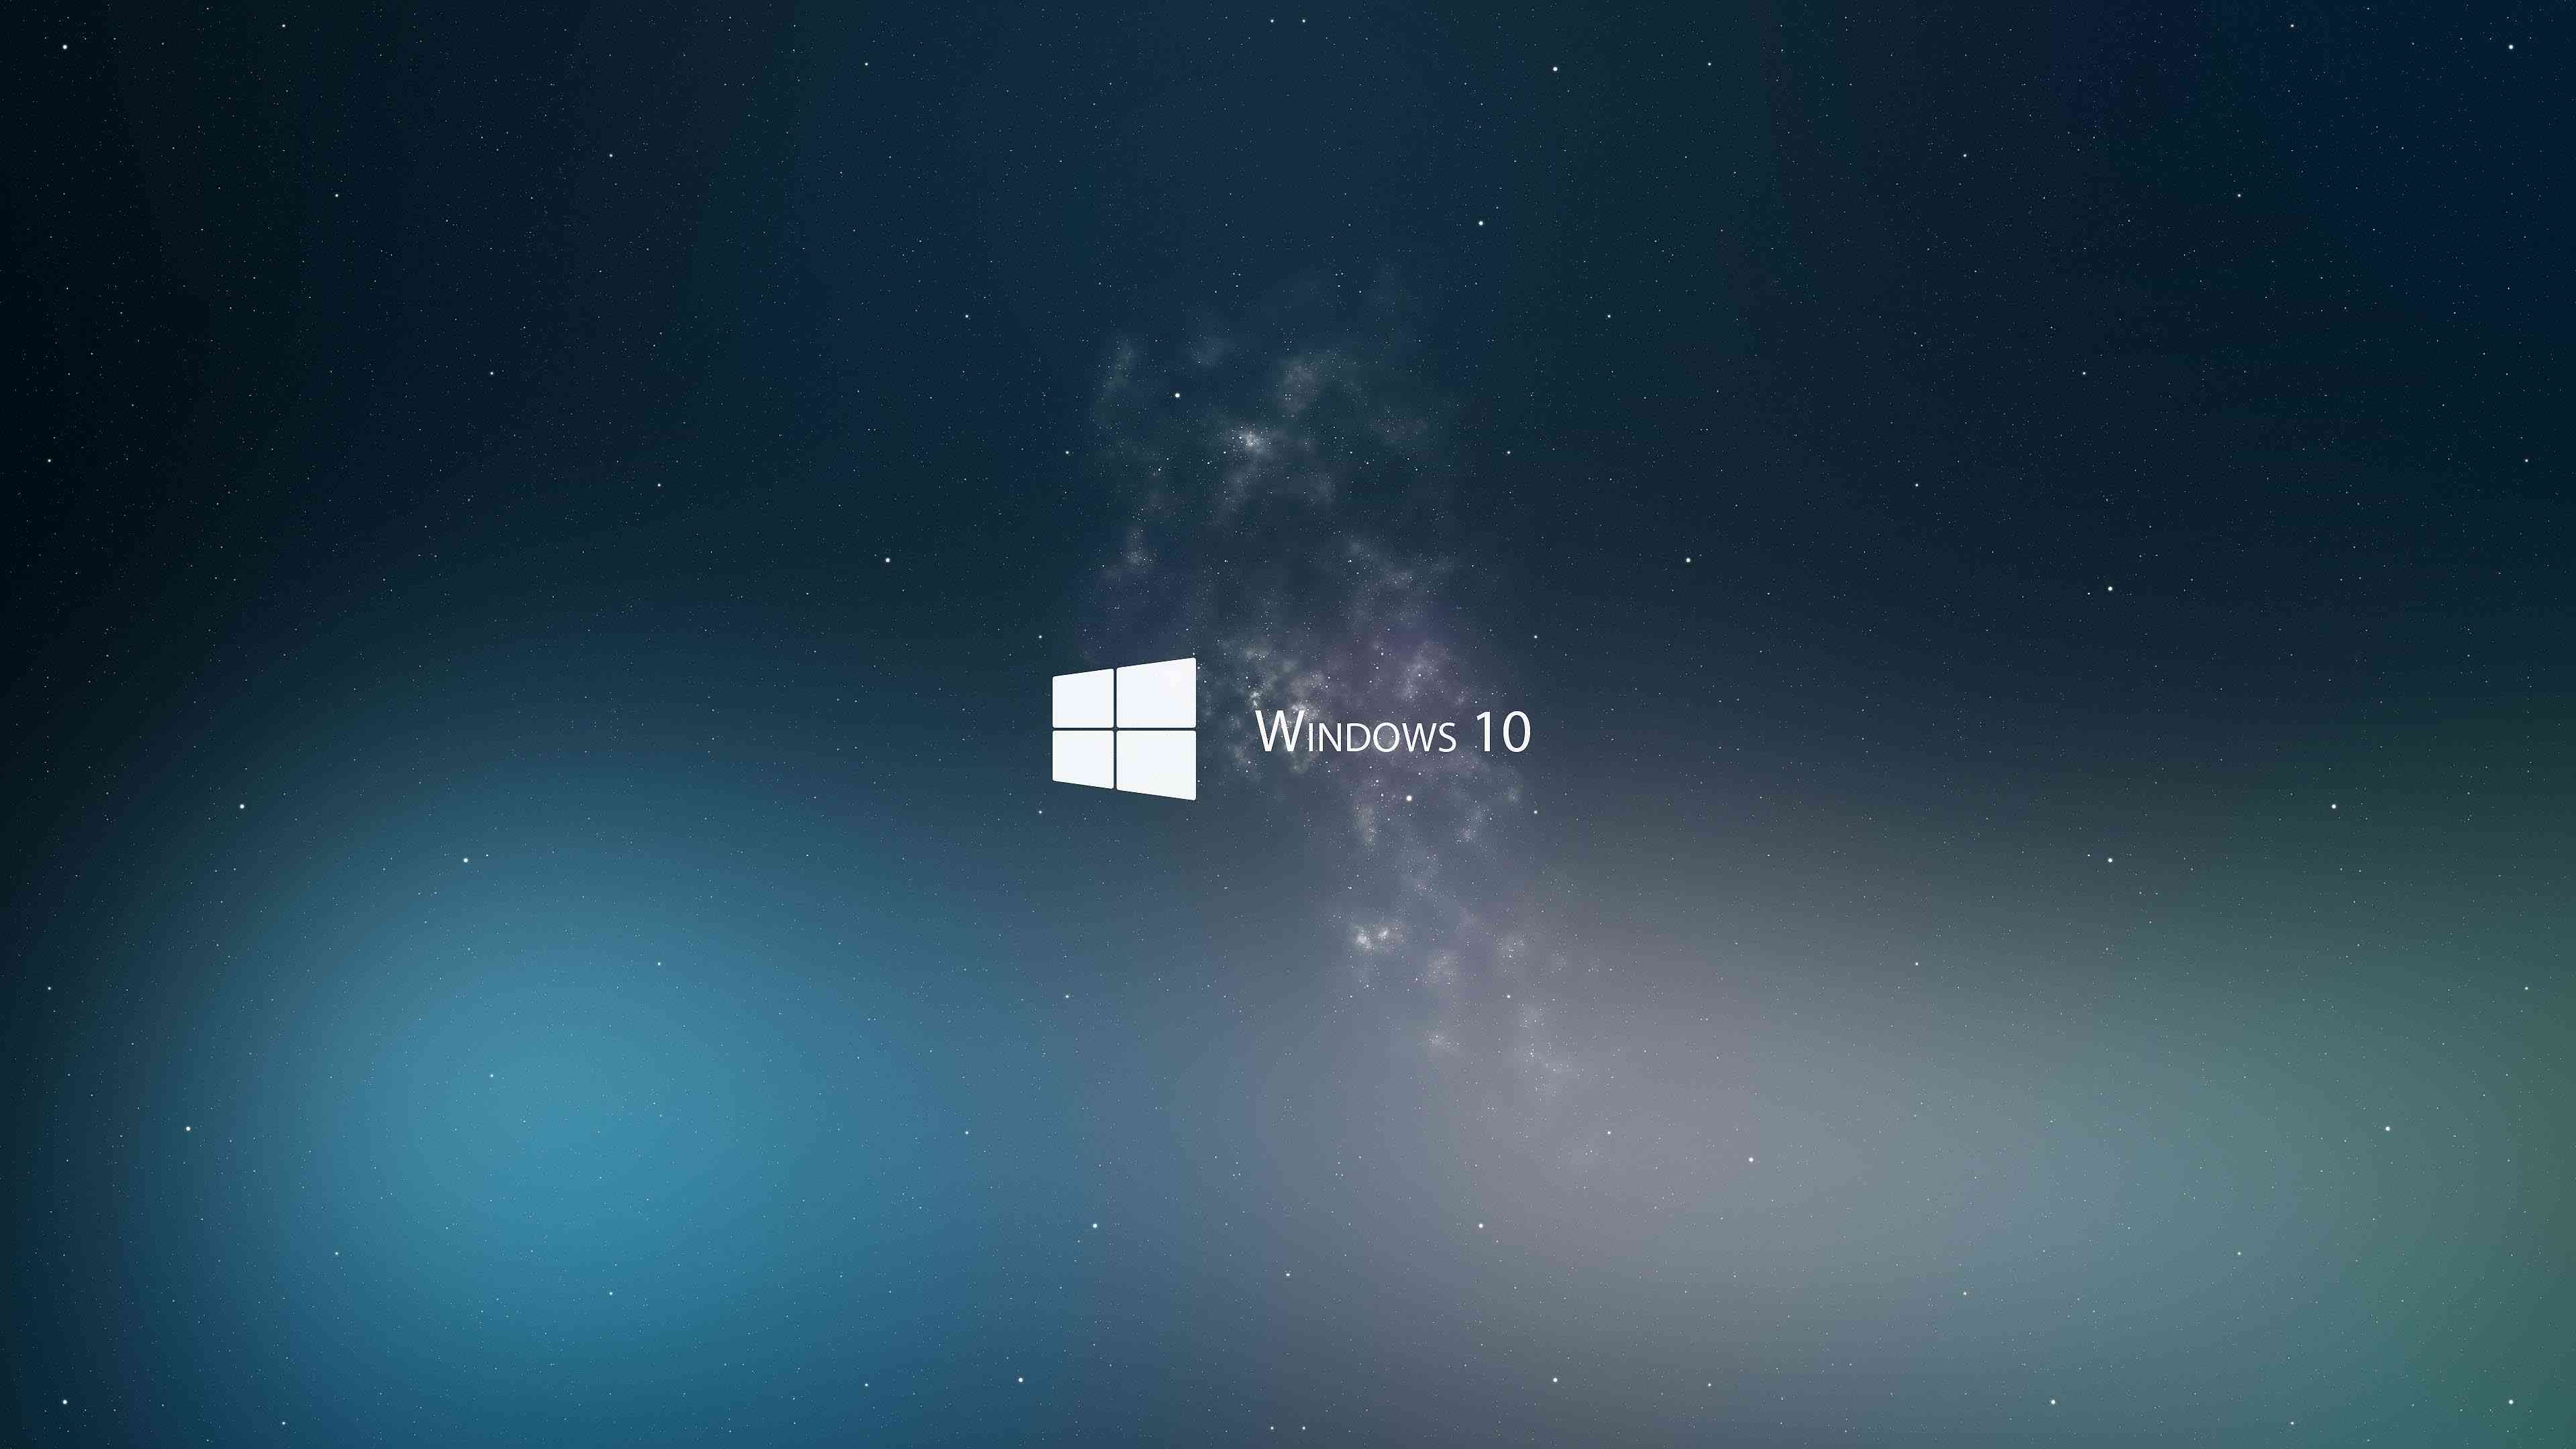 Simple windows 10 wallpaper hd